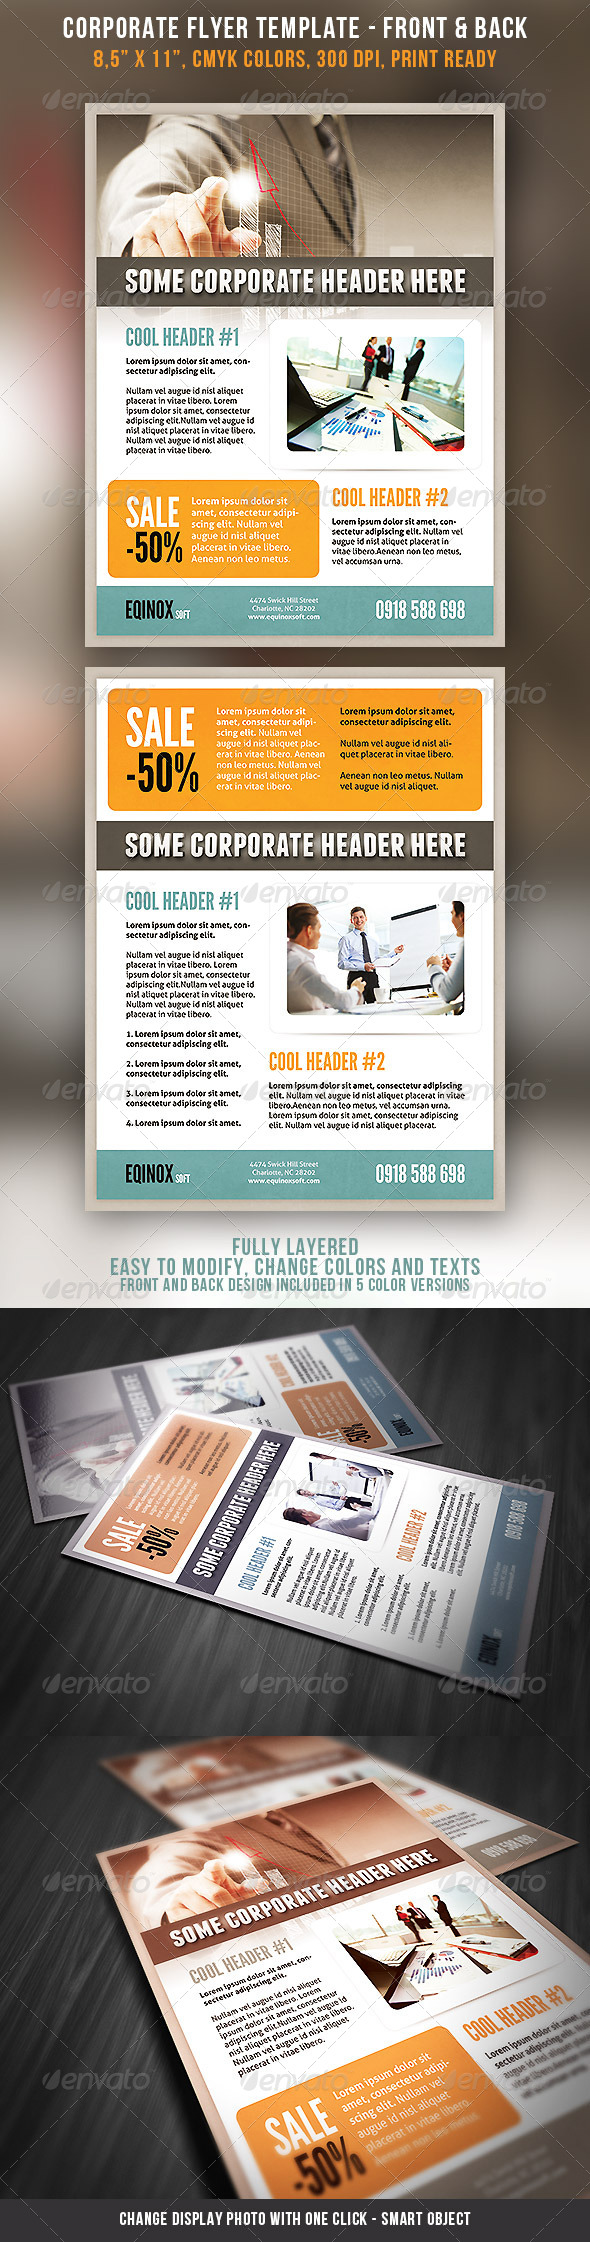 GraphicRiver Corporate Flyer Template 5255296